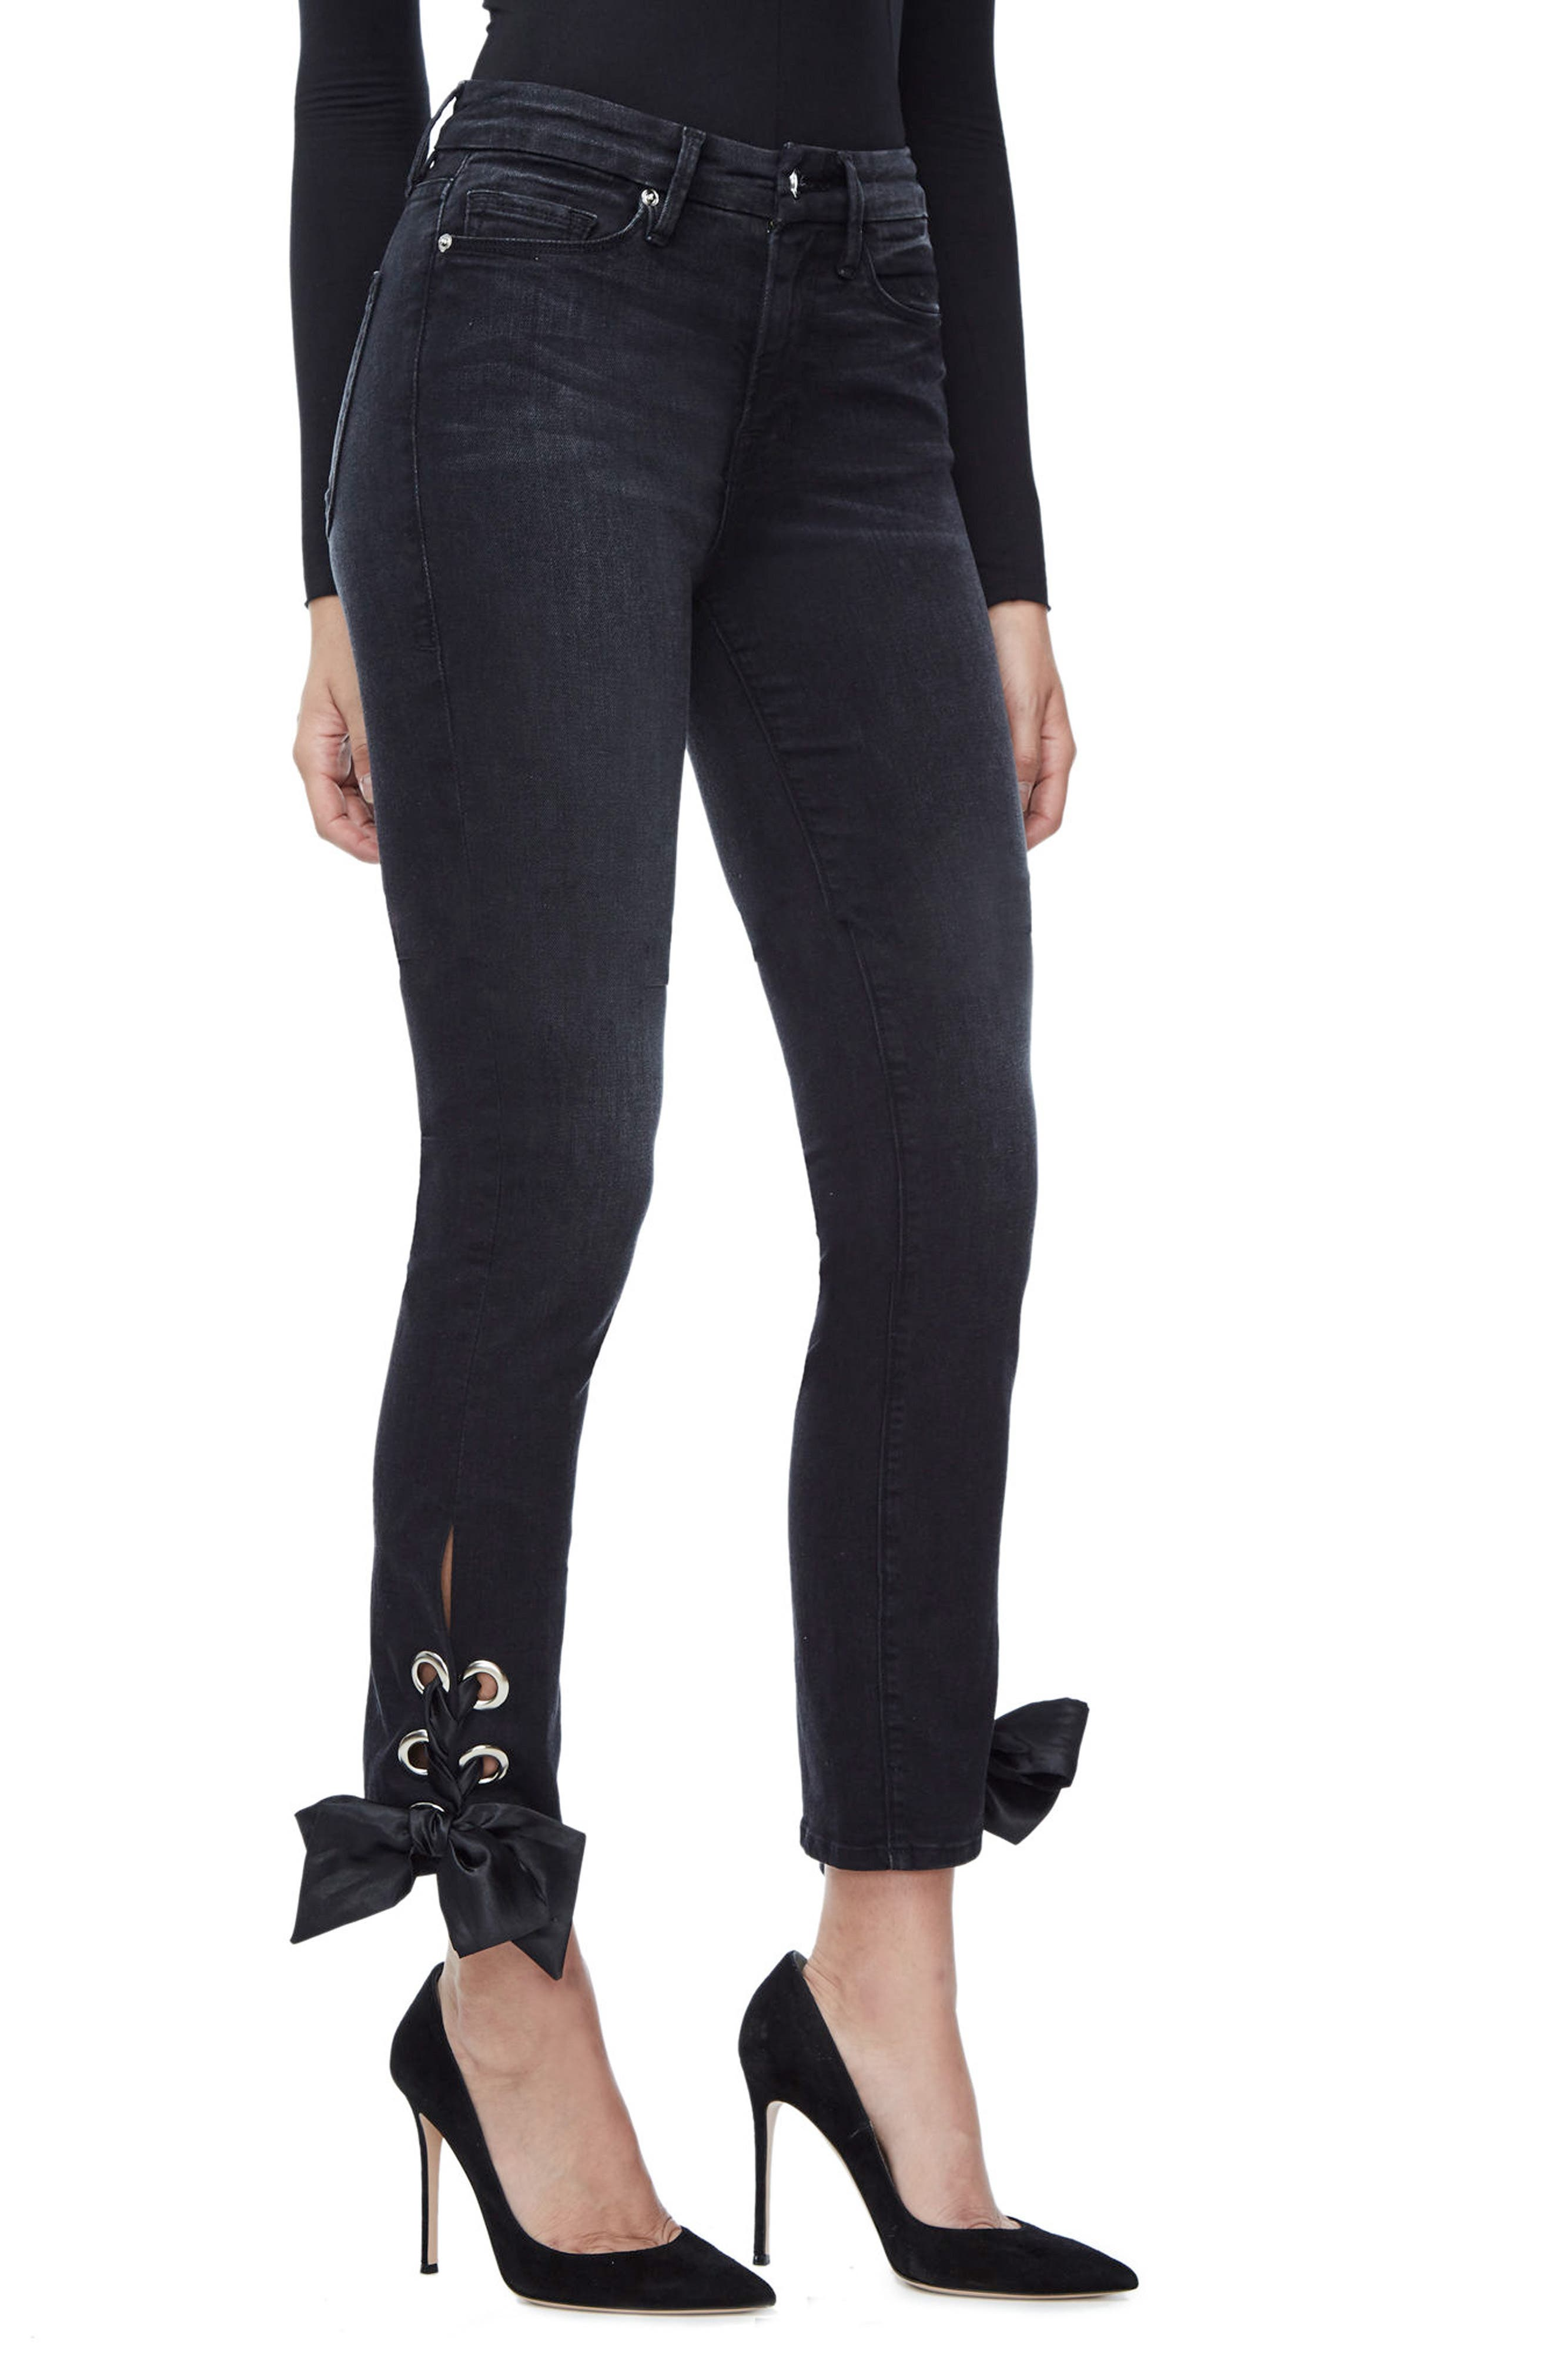 Alternate Image 3  - Good American Good Straight Ankle Lace Skinny Jeans (Black 010) (Extended Sizes)